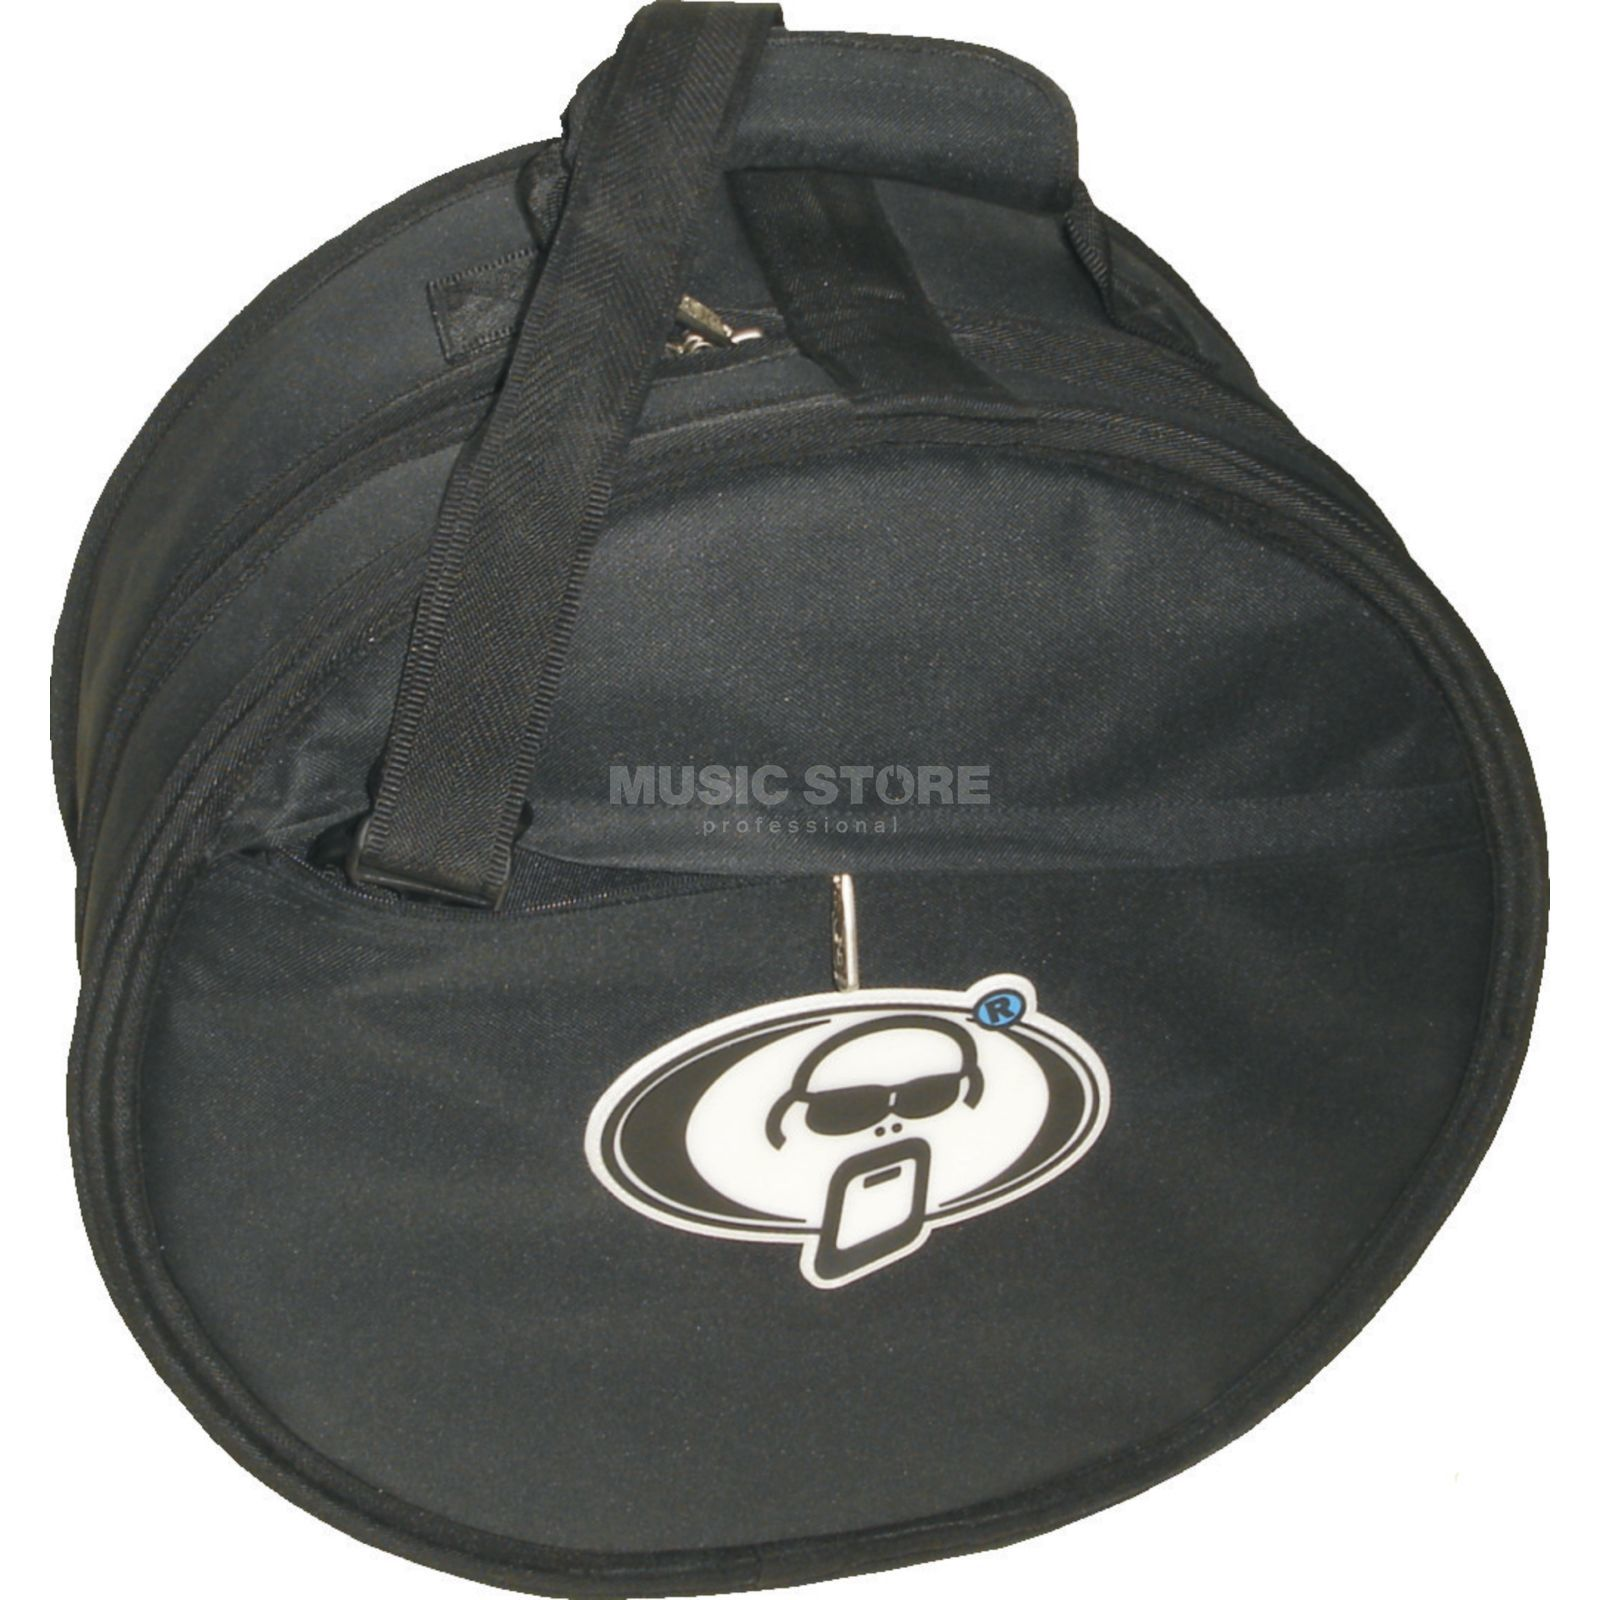 "Protection Racket Snare Bag 3006C, 14""x6,5"", w/Shoulder Strap Produktbild"